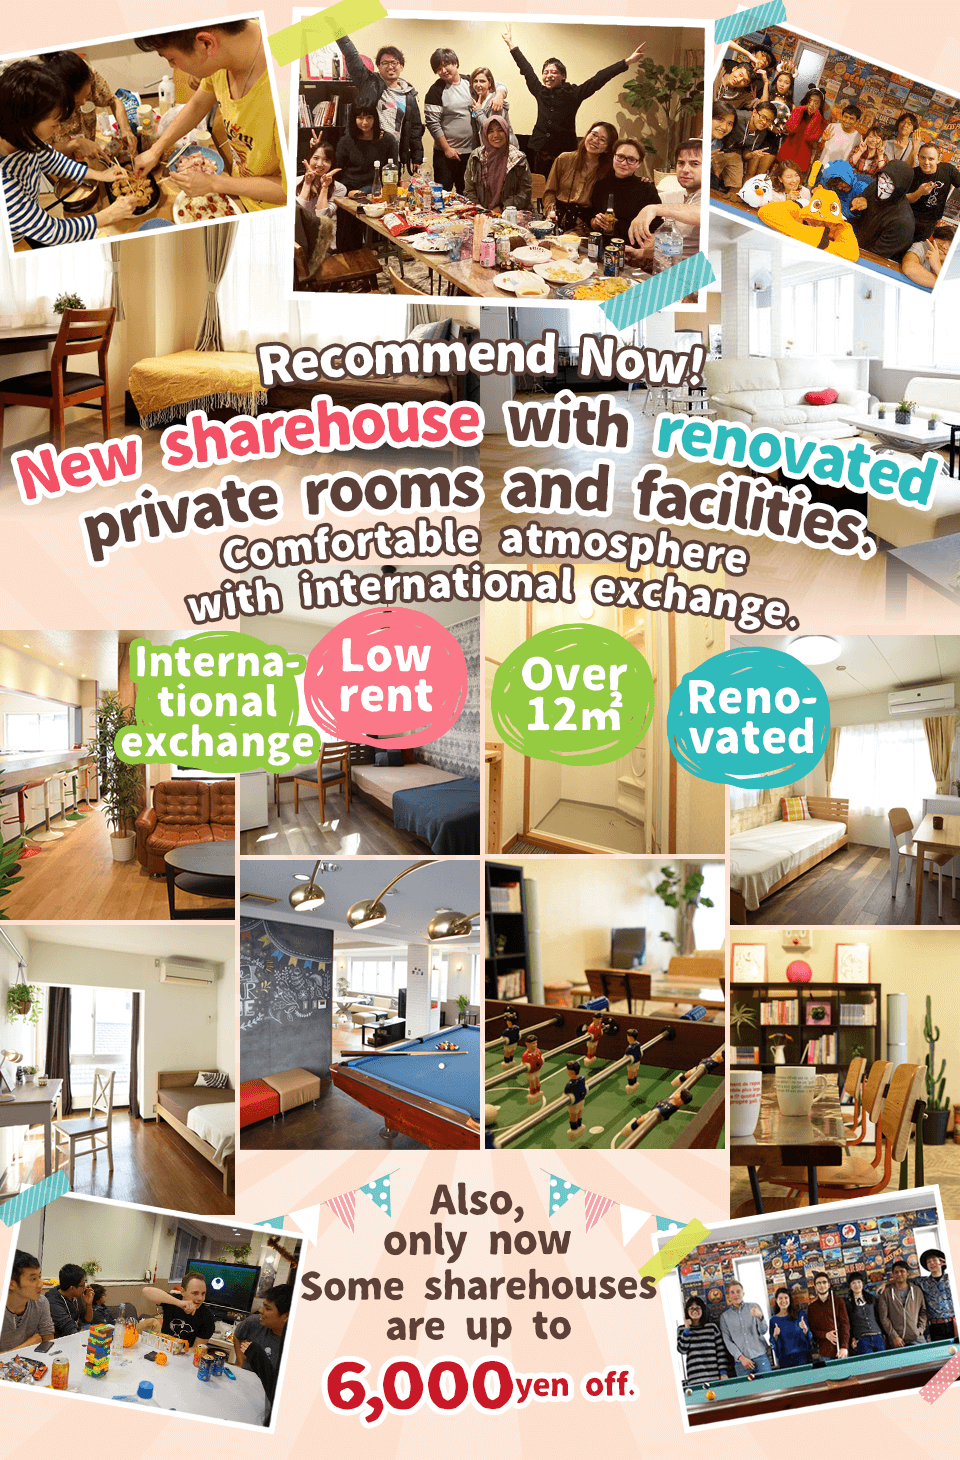 Recommended Cheap Share Houses Now!